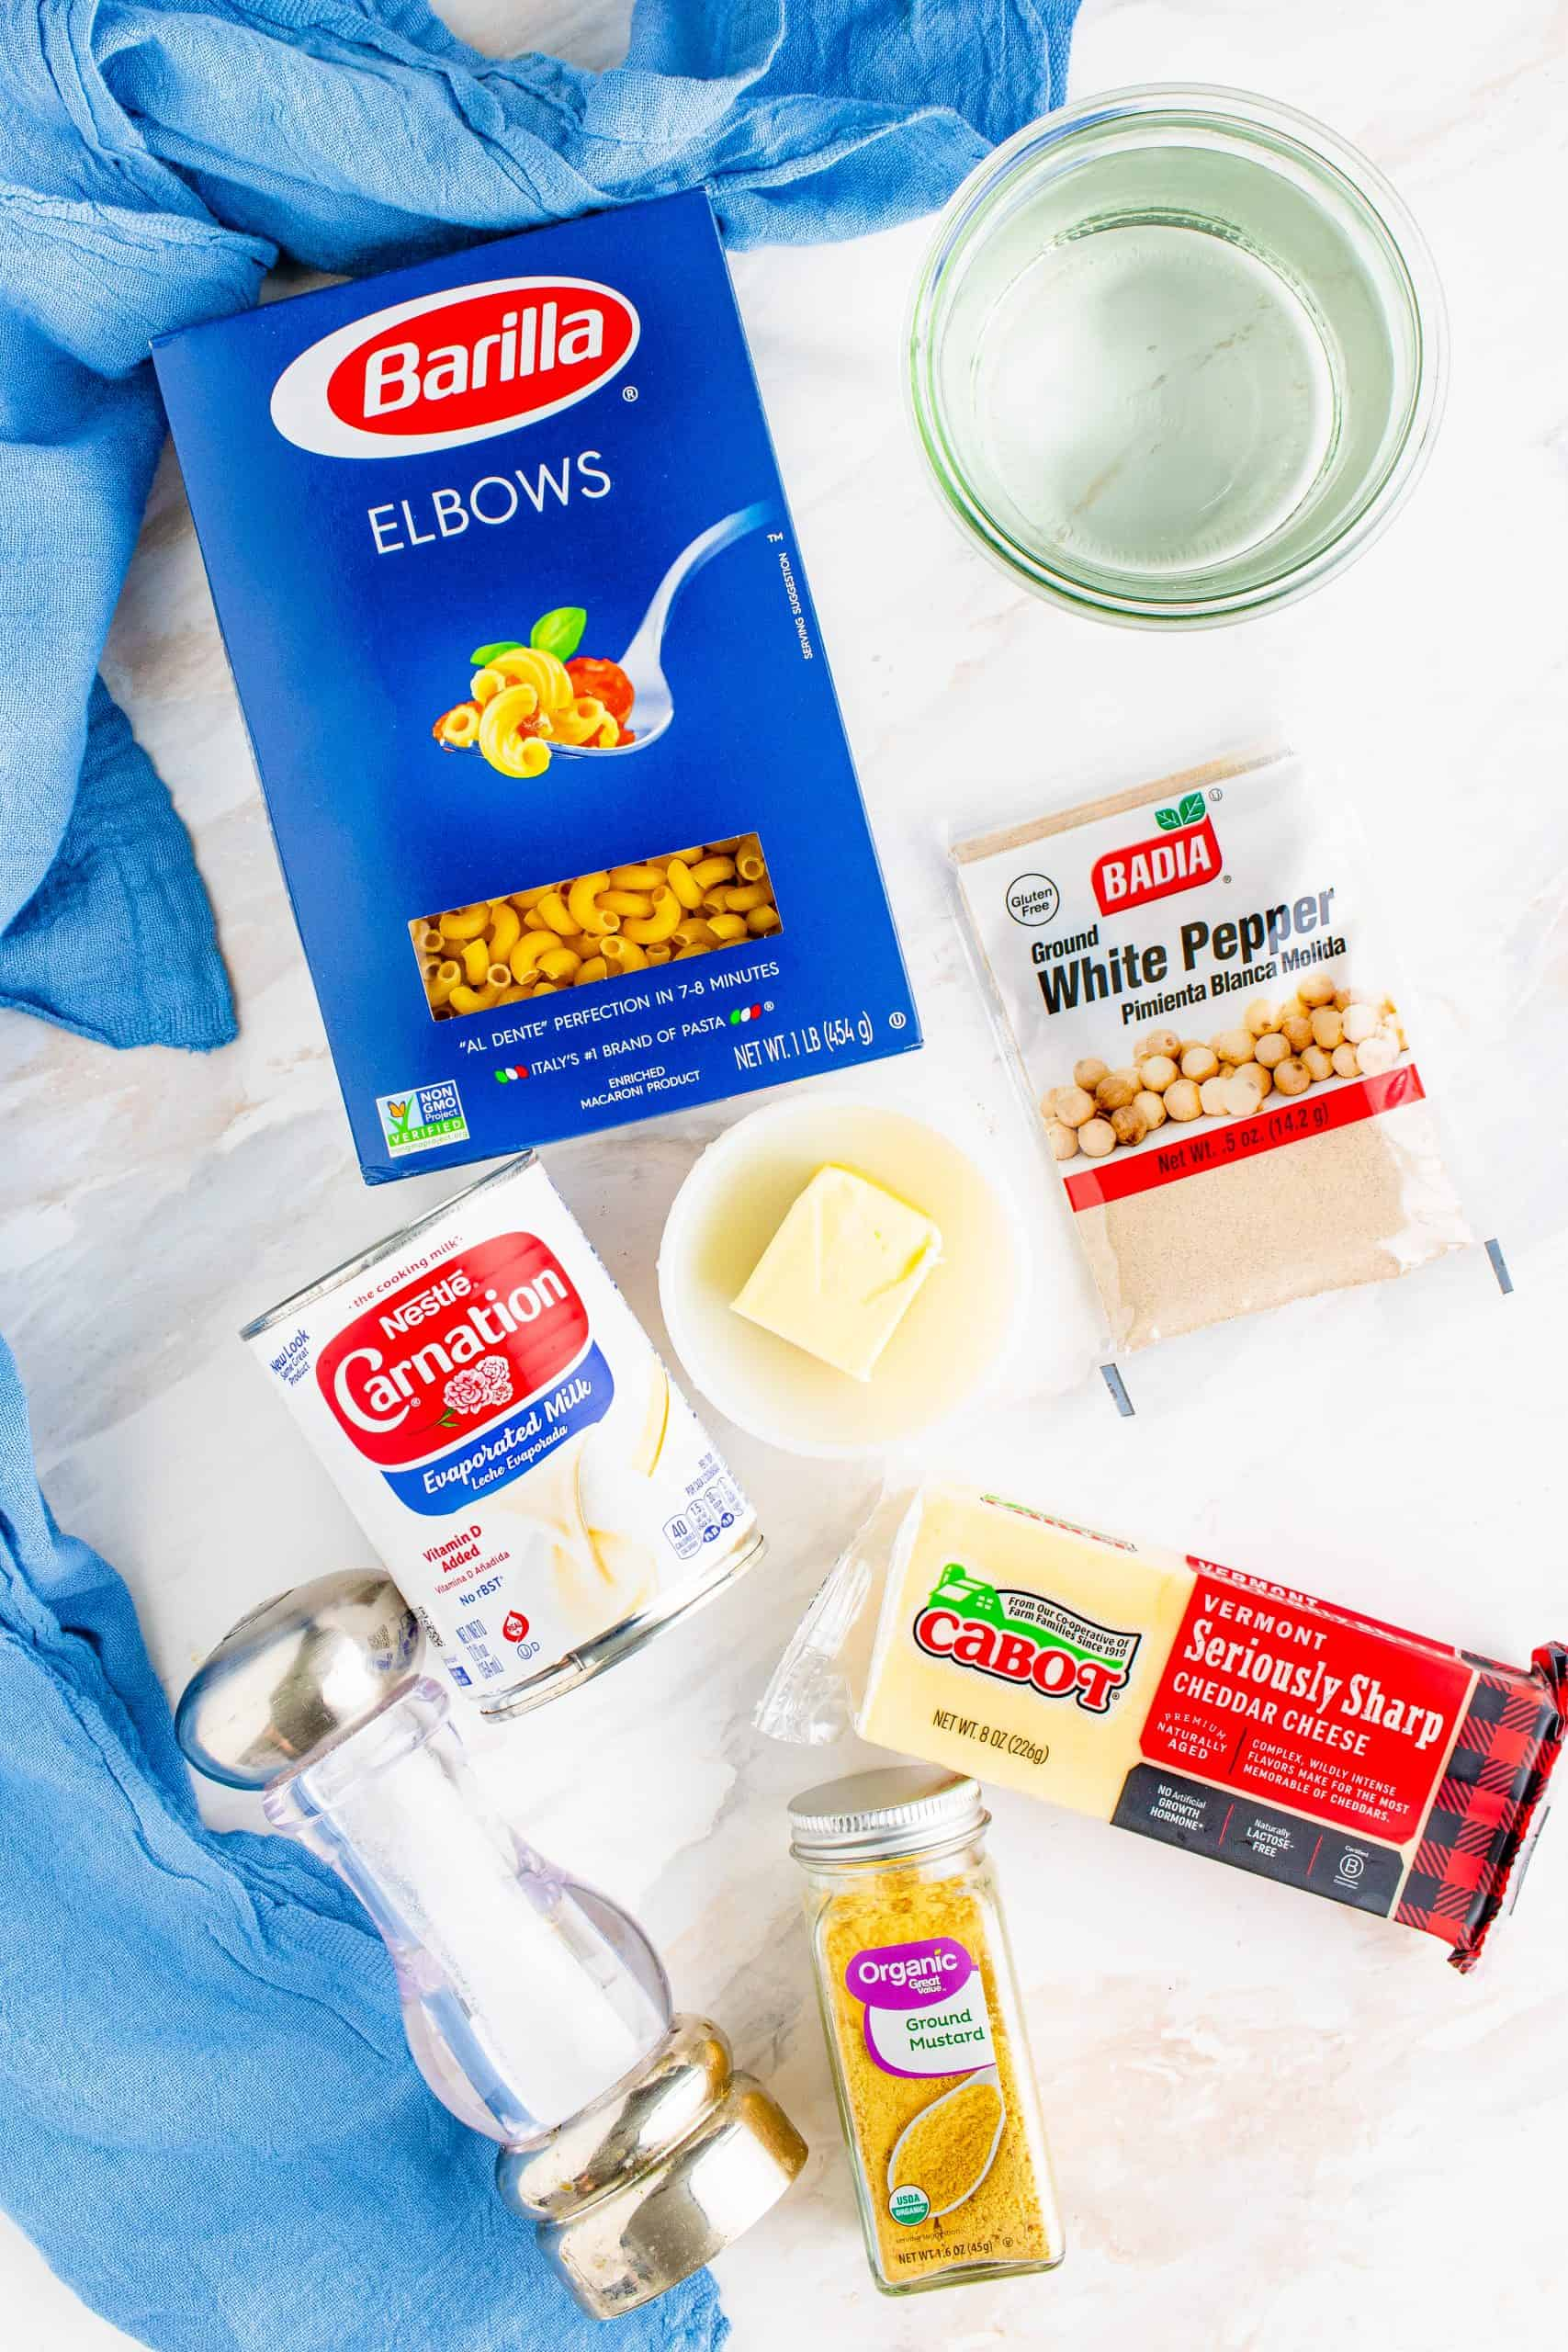 Instant Pot Macaroni and Cheese ingredients: elbow macaroni noodles, water, salted butter, evaporated milk, freshly shredded cheddar cheese, salt, dry mustard powder.